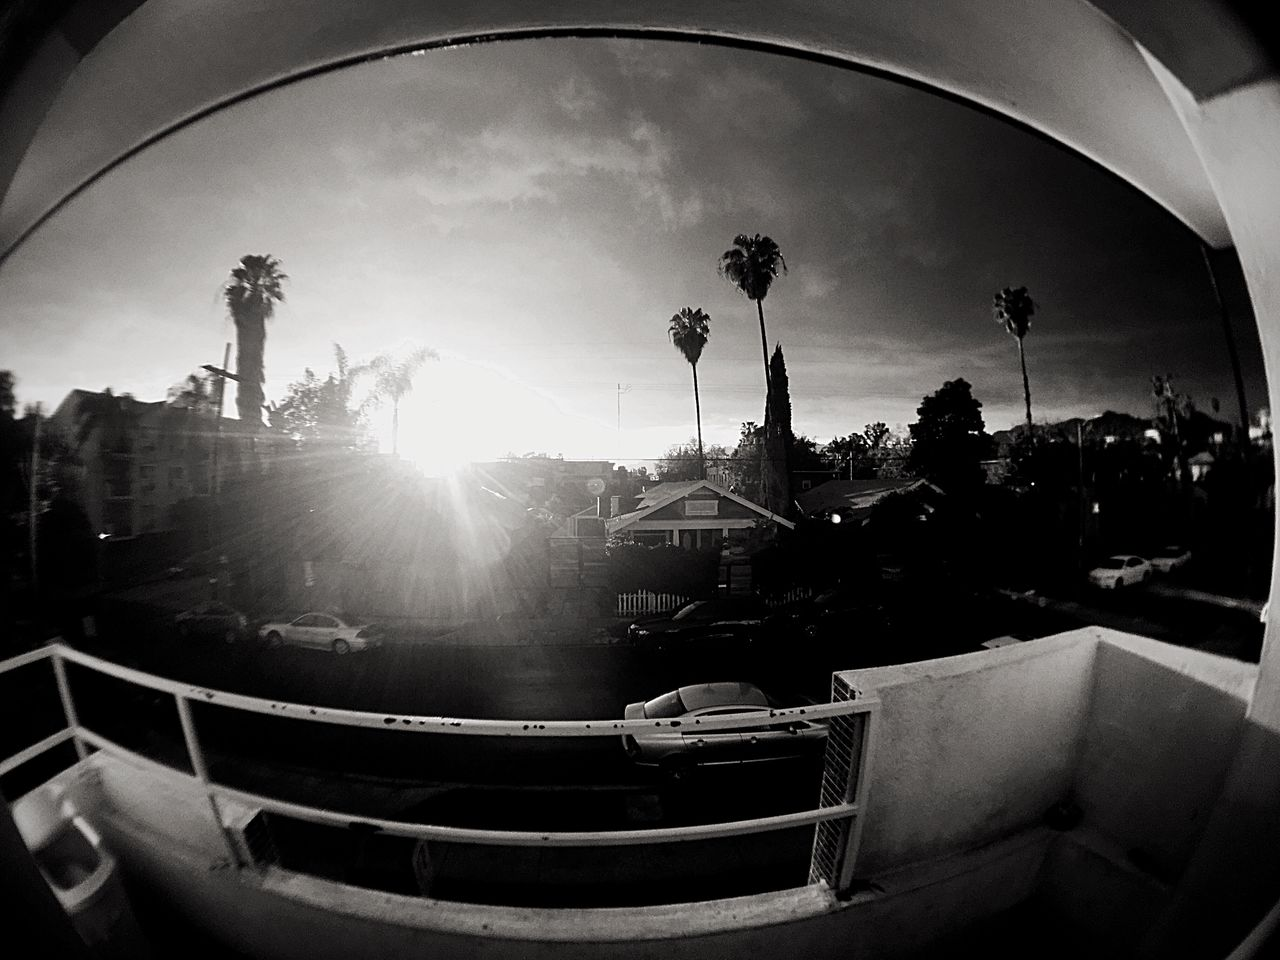 Balcony Balcony View Sunlight Sky Sun Fish-eye Lens Day City City Sky Clouds Blackandwhite Fisheye